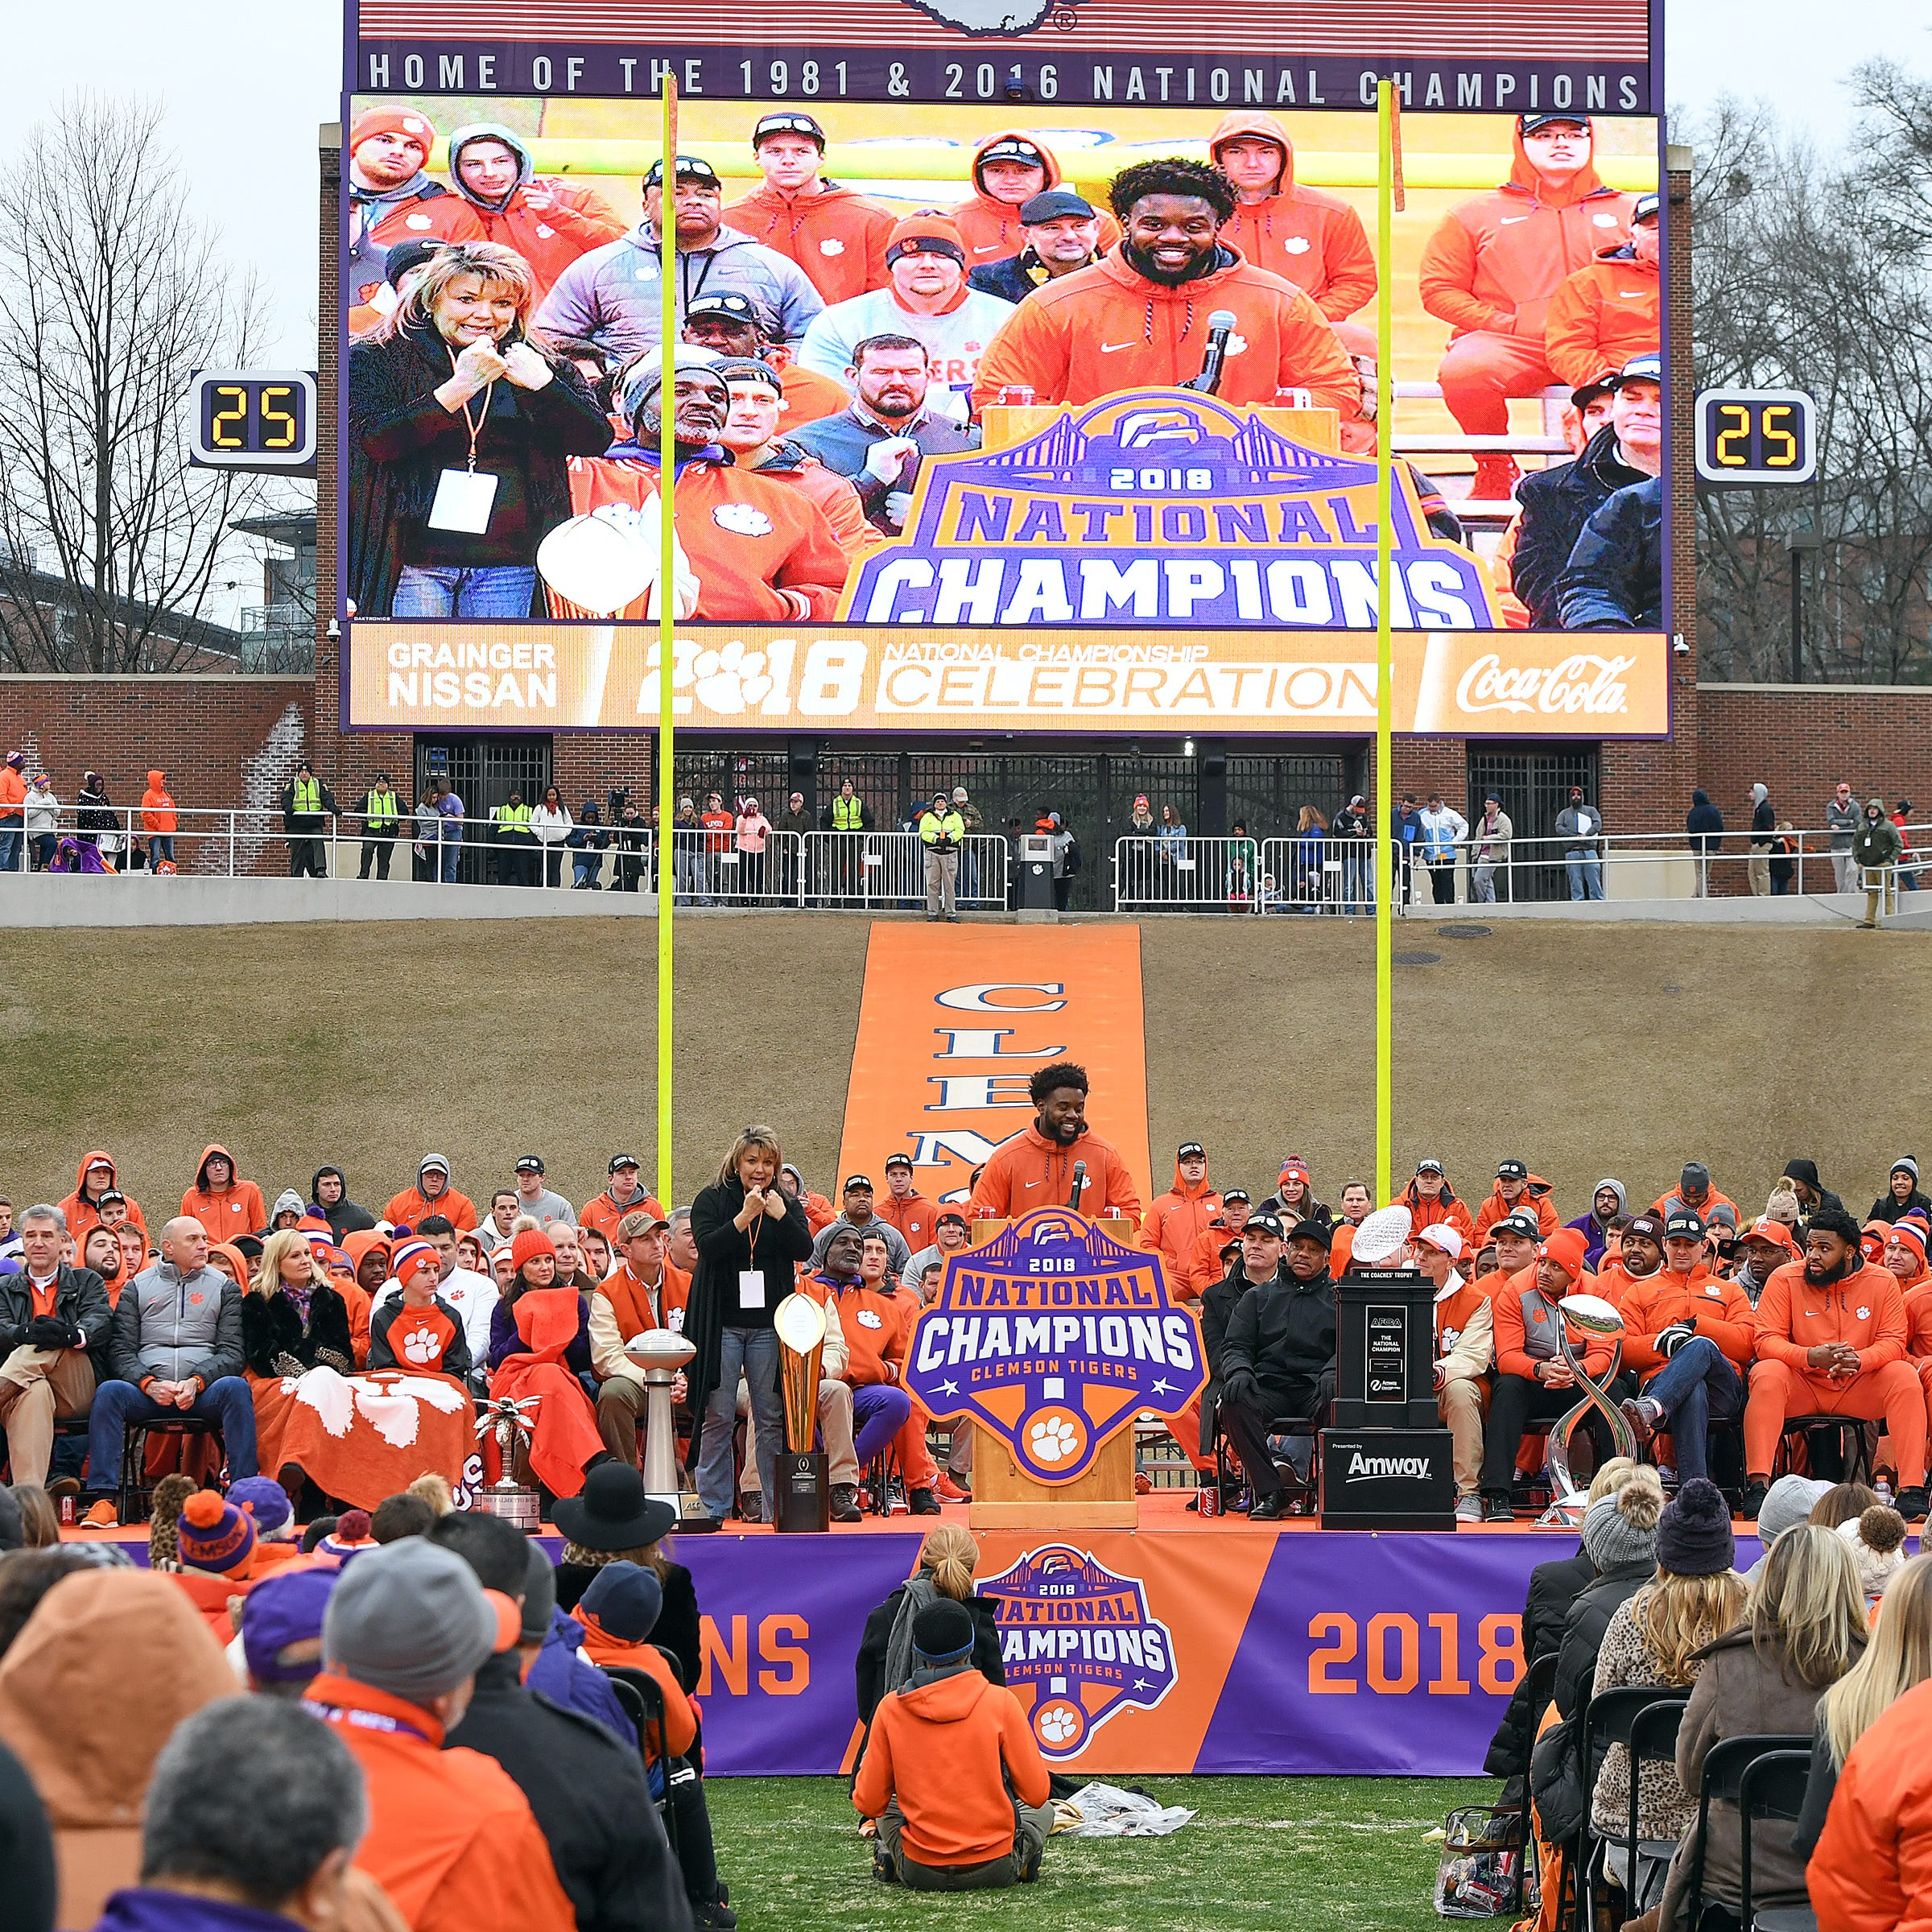 President Trump criticized for inviting Clemson to White House amid government shutdown